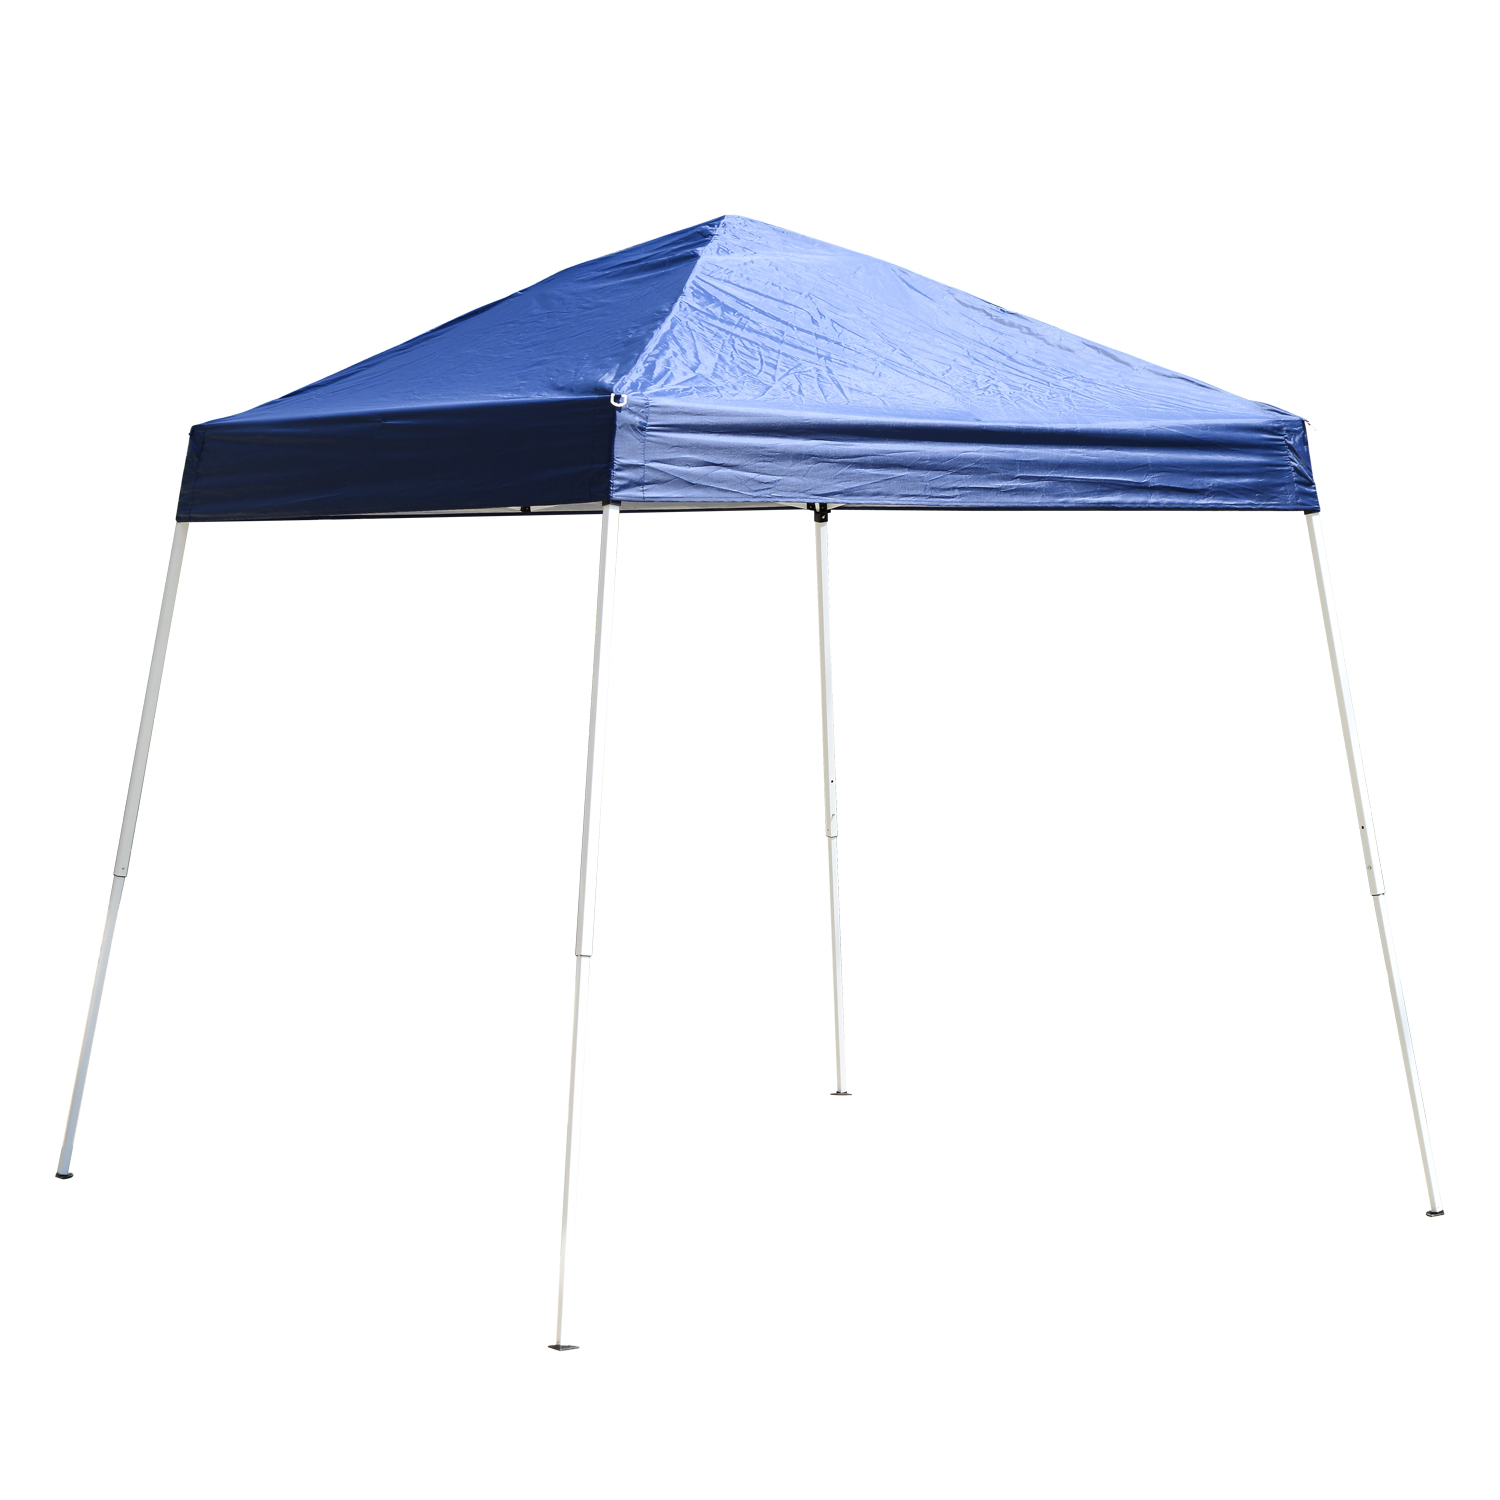 Outsunny 8' x 8' Slant Leg Pop Up Canopy Tent - Blue